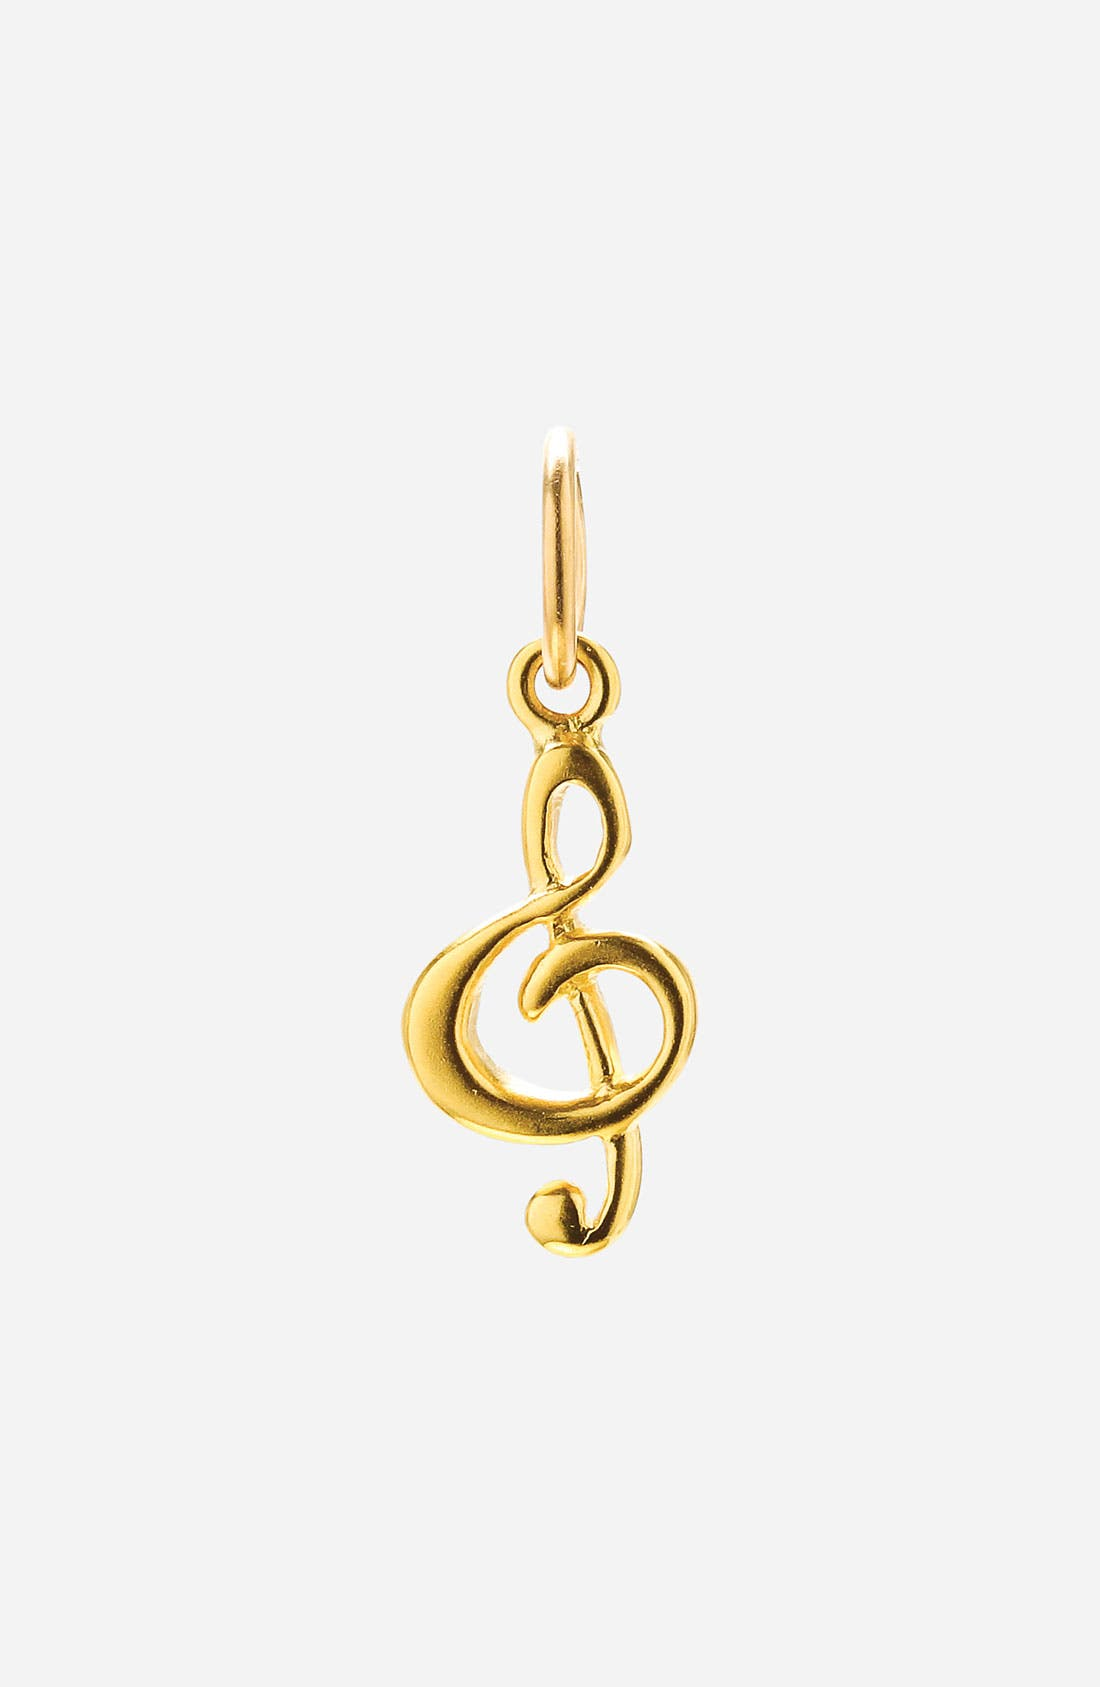 Alternate Image 1 Selected - Dogeared 'Create - Hobby' Treble Clef Charm